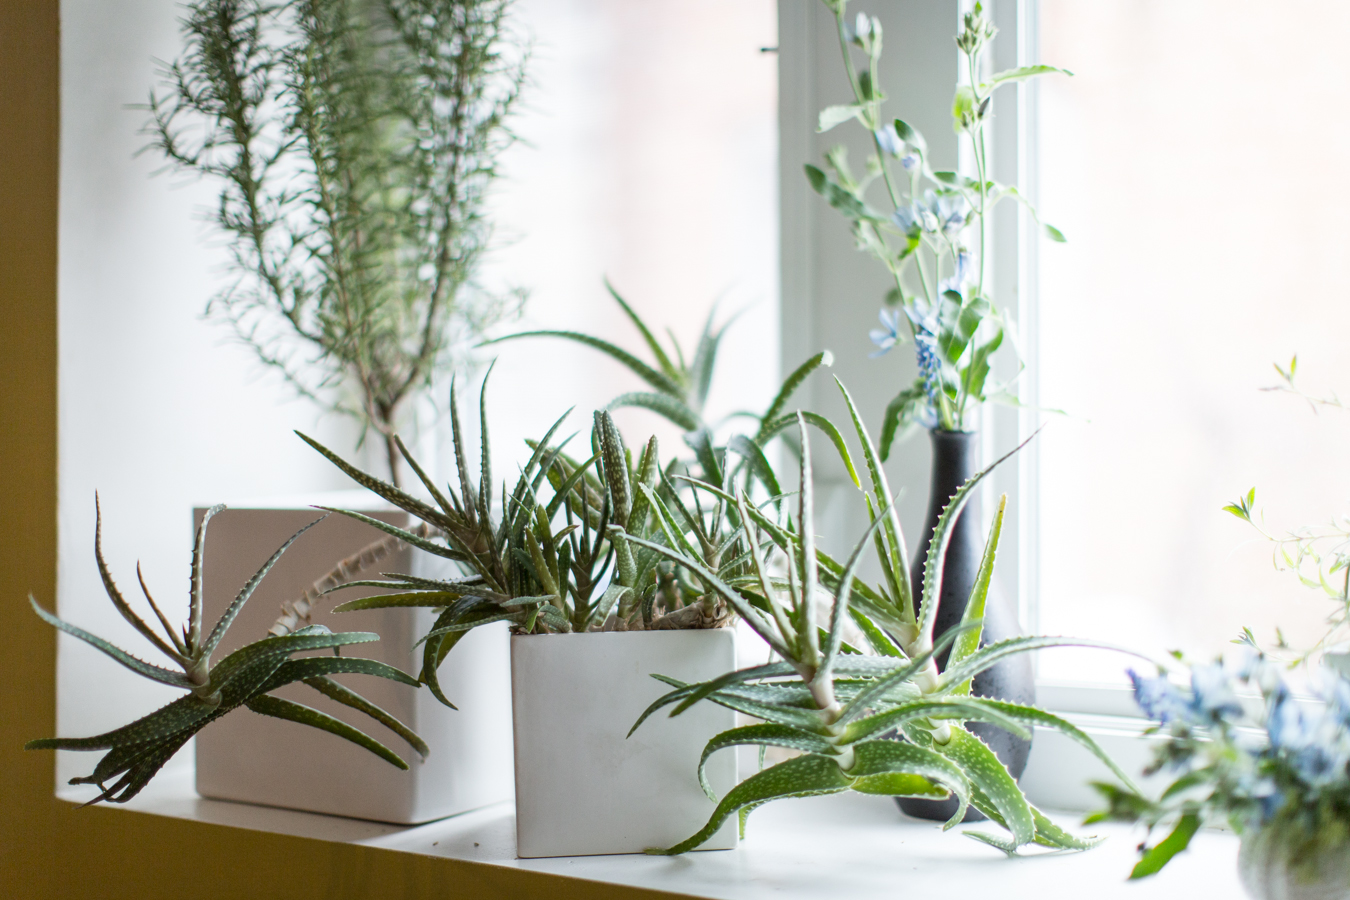 16 low maintenance indoor houseplants most likely to survive all year long real simple. Black Bedroom Furniture Sets. Home Design Ideas